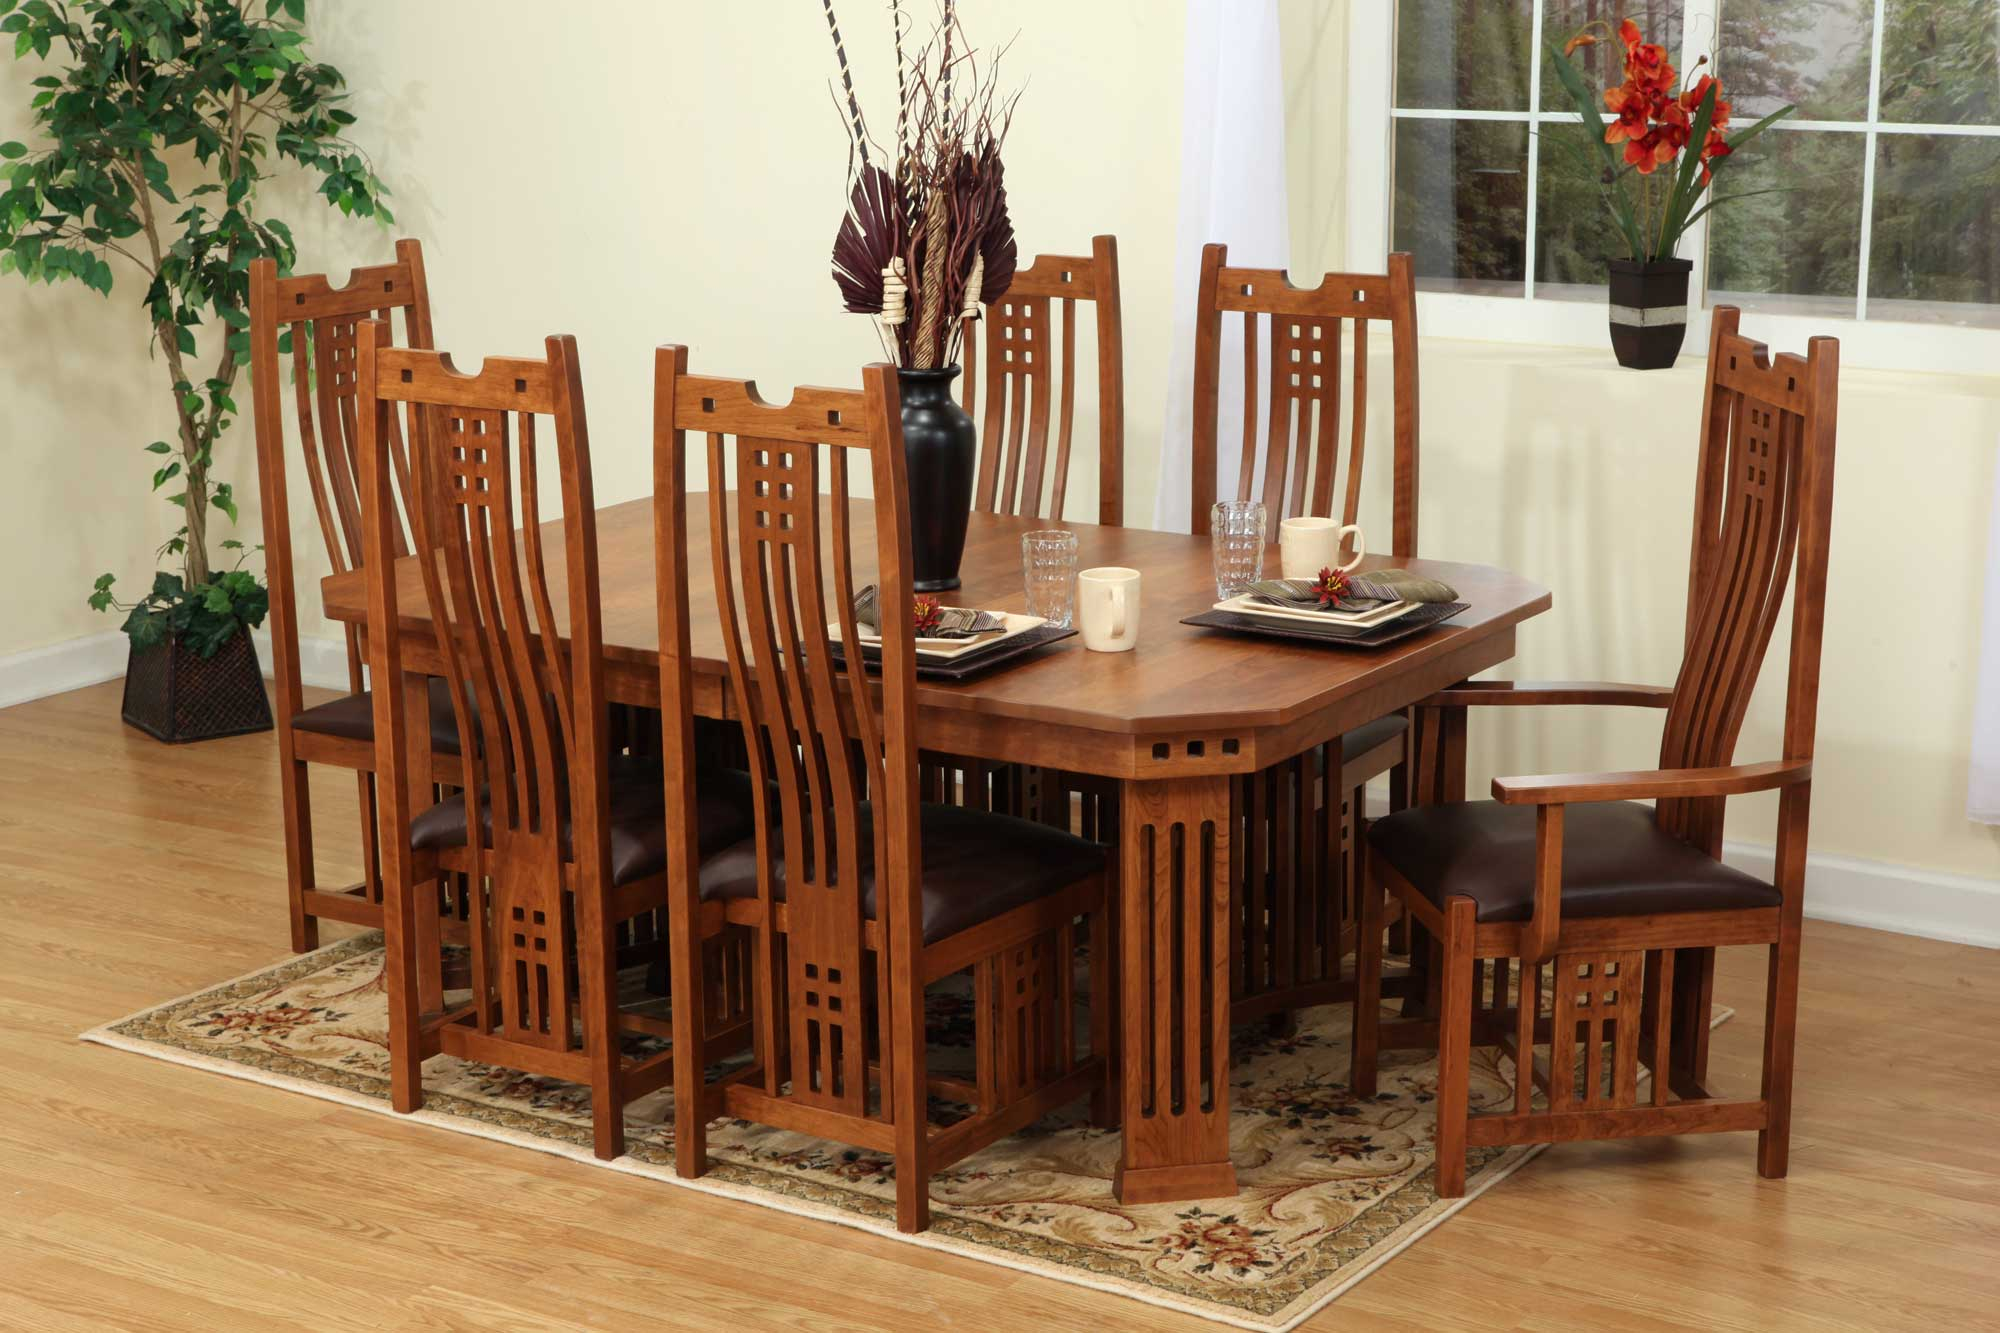 9 Pieces Oak Mission Style Dining Room Set With Hexagon Black in Mission Style Living Room Set